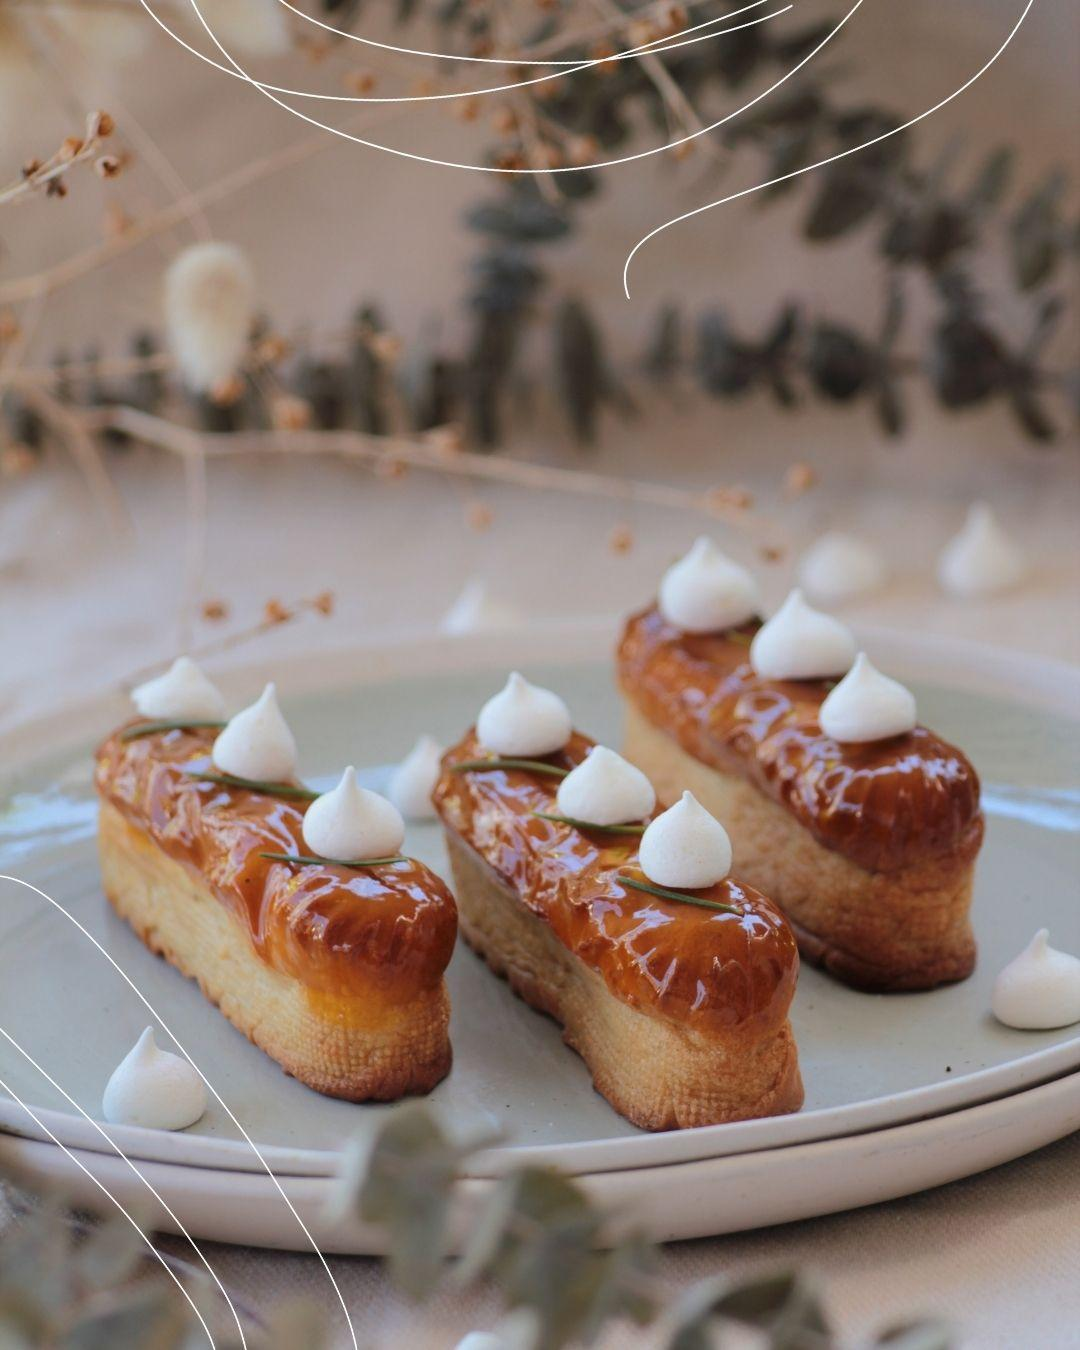 Eclair topped with meringue